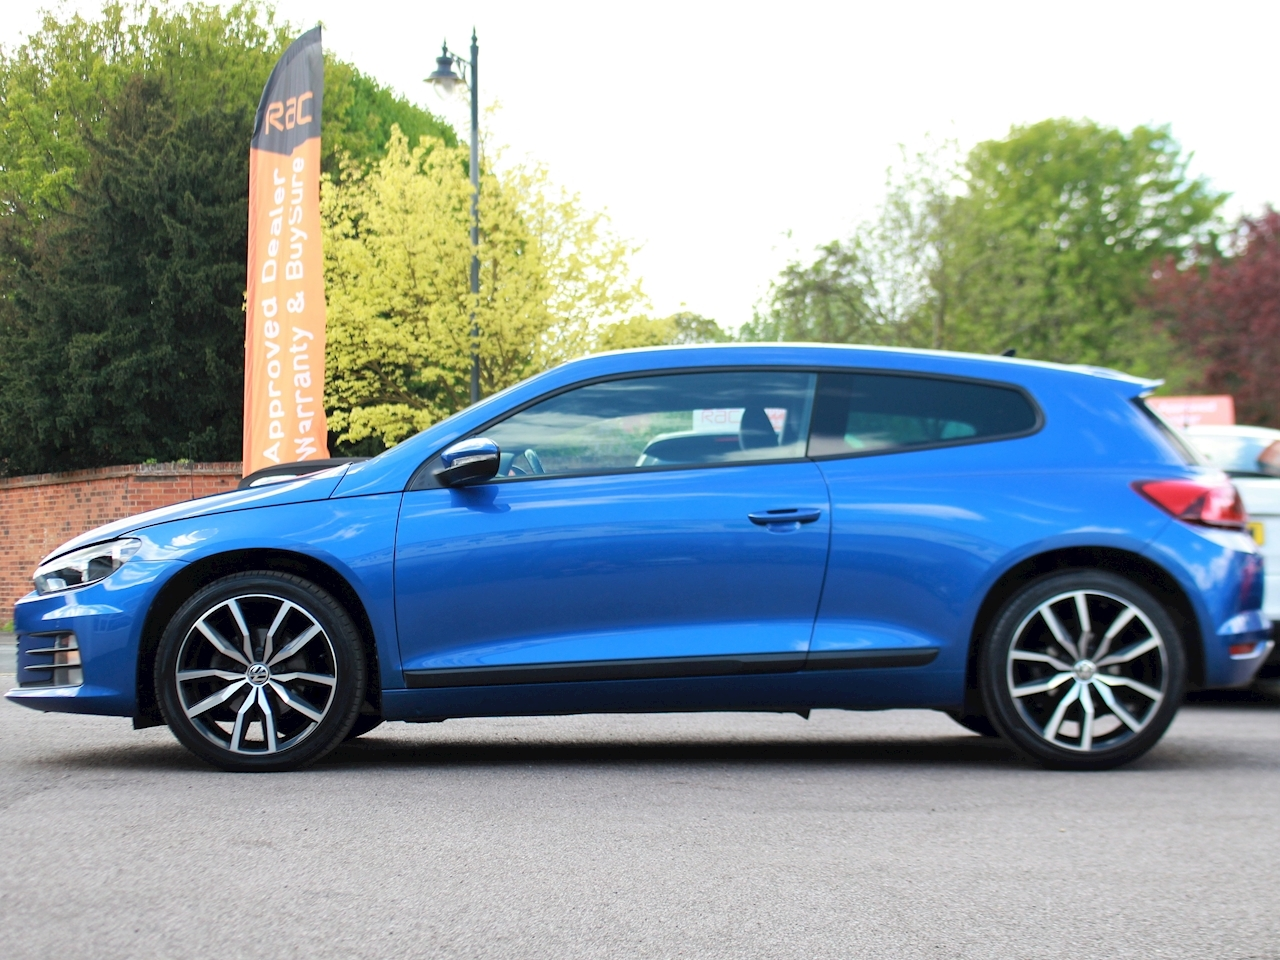 Volkswagen Scirocco Gt Tdi Bluemotion Technology Dsg - Large 6